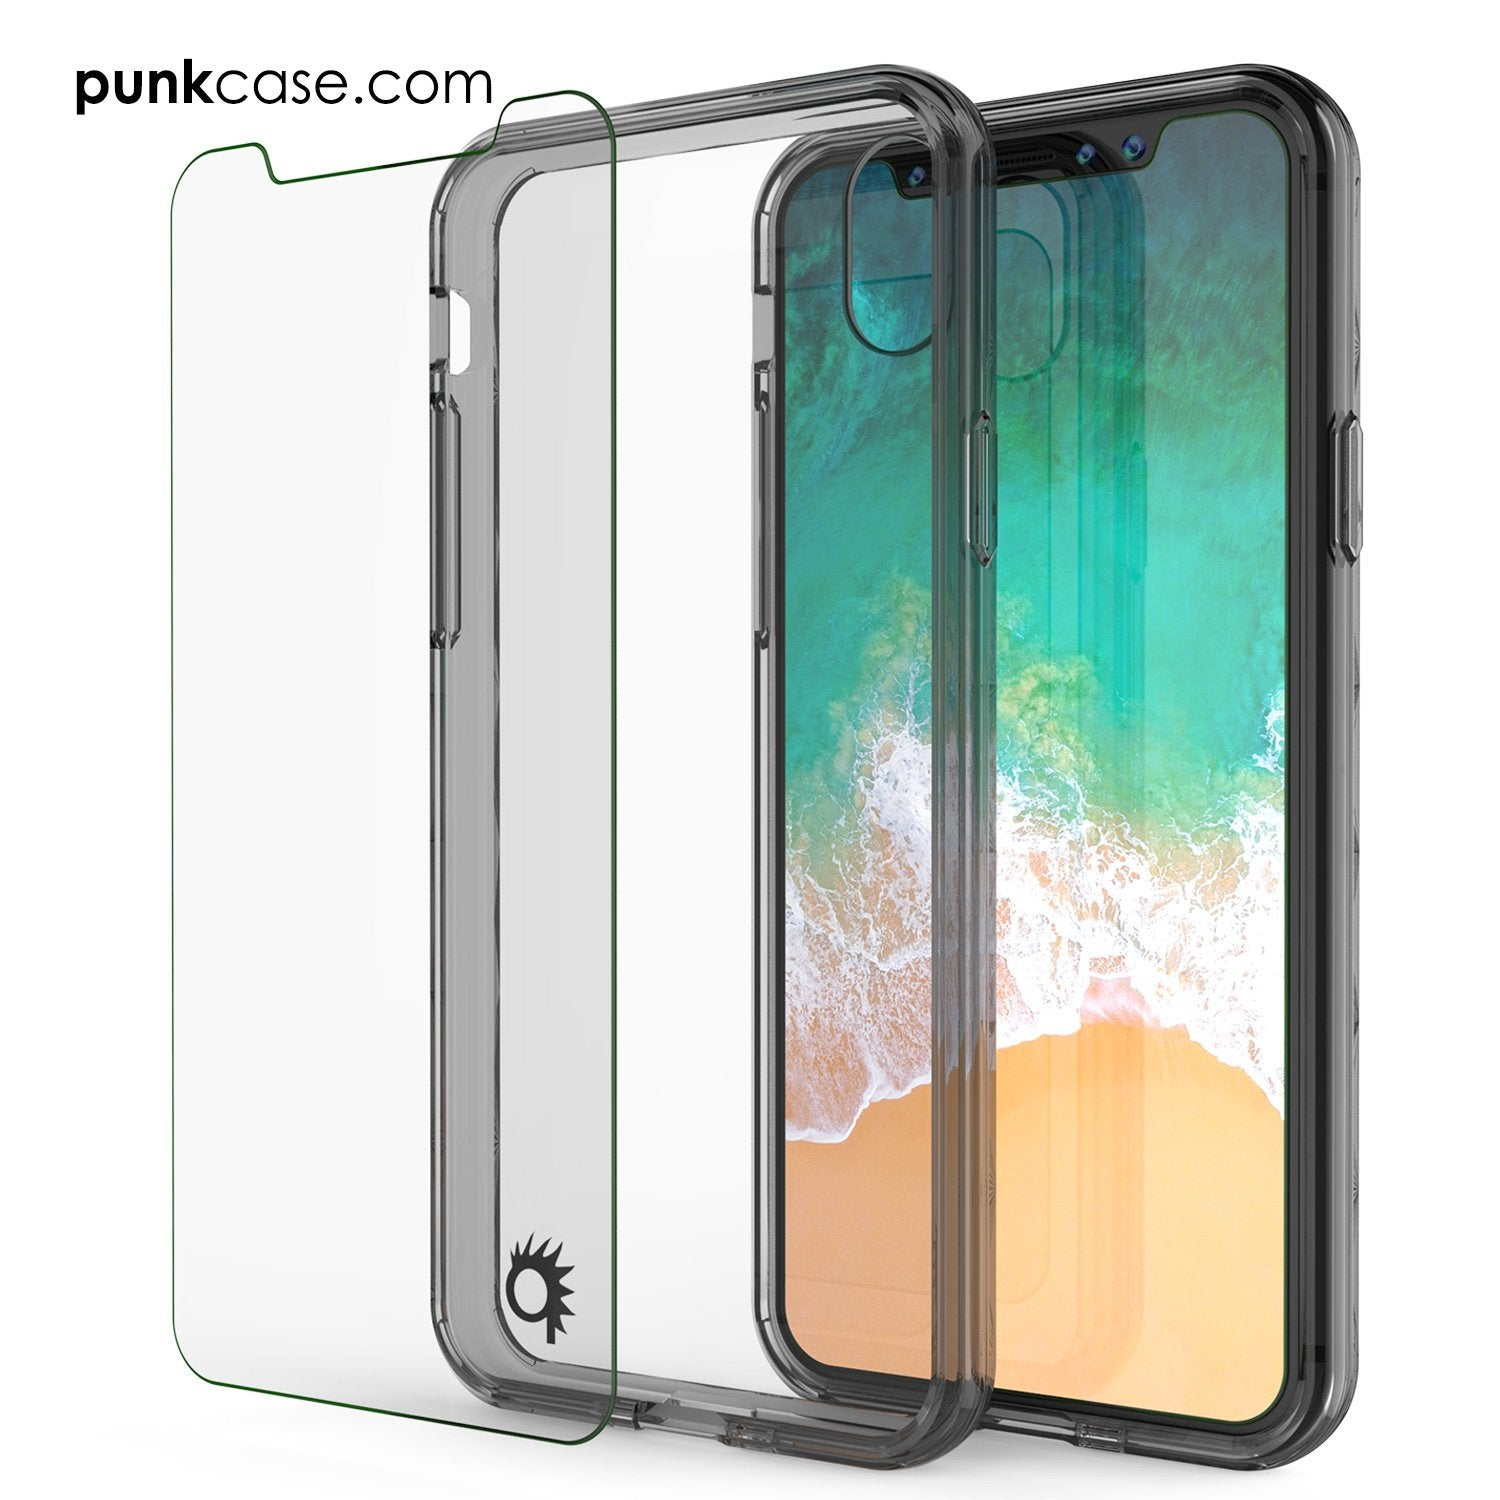 iPhone X Case, PUNKcase [LUCID 2.0 Series] [Slim Fit] Armor Cover W/Integrated Anti-Shock System & Tempered Glass Screen Protector [Crystal Black]